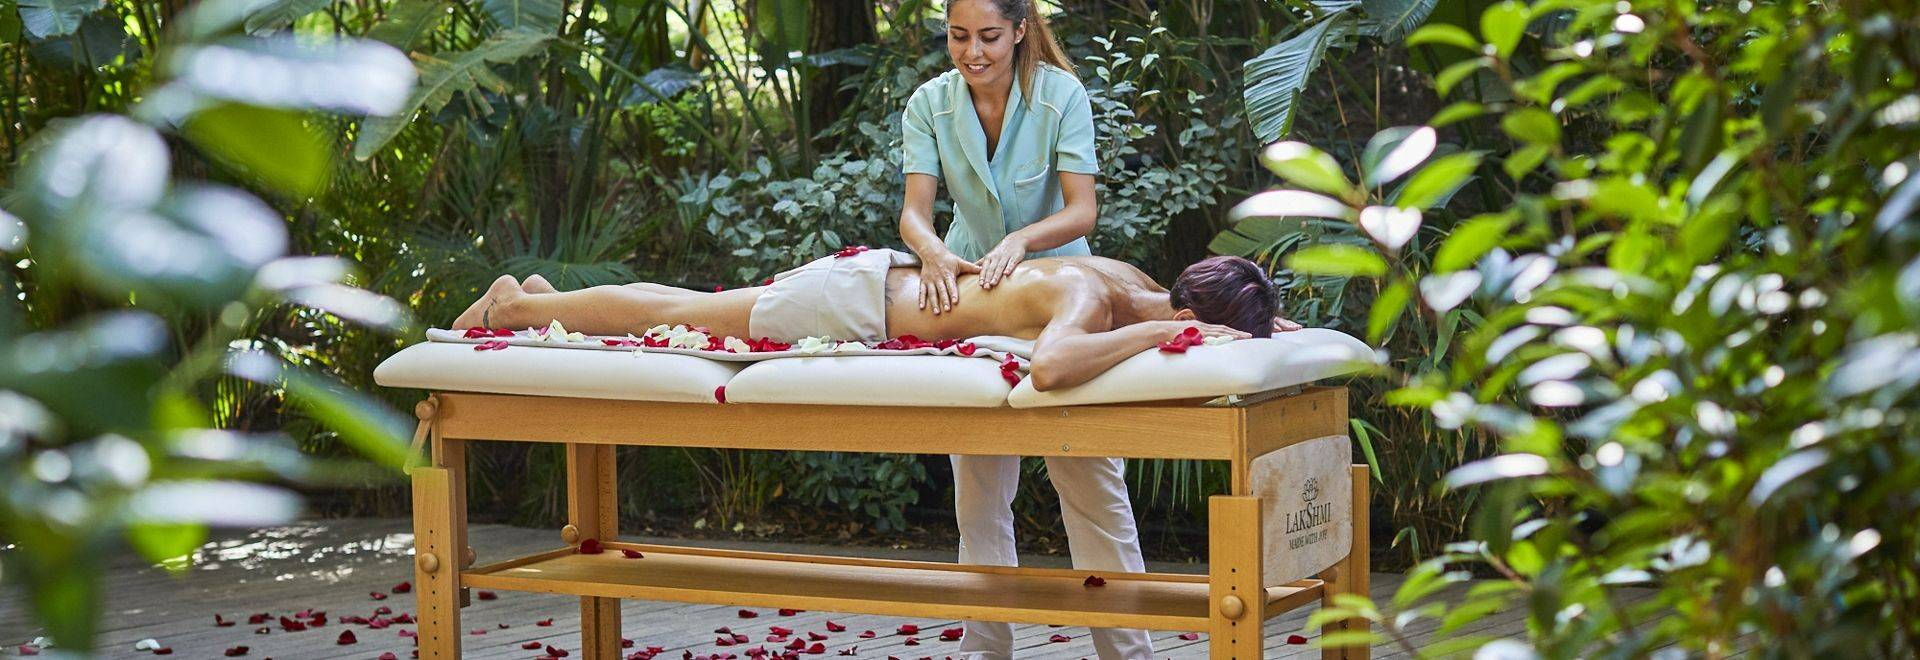 Forte-Village-outodor-spa-treatment.jpg